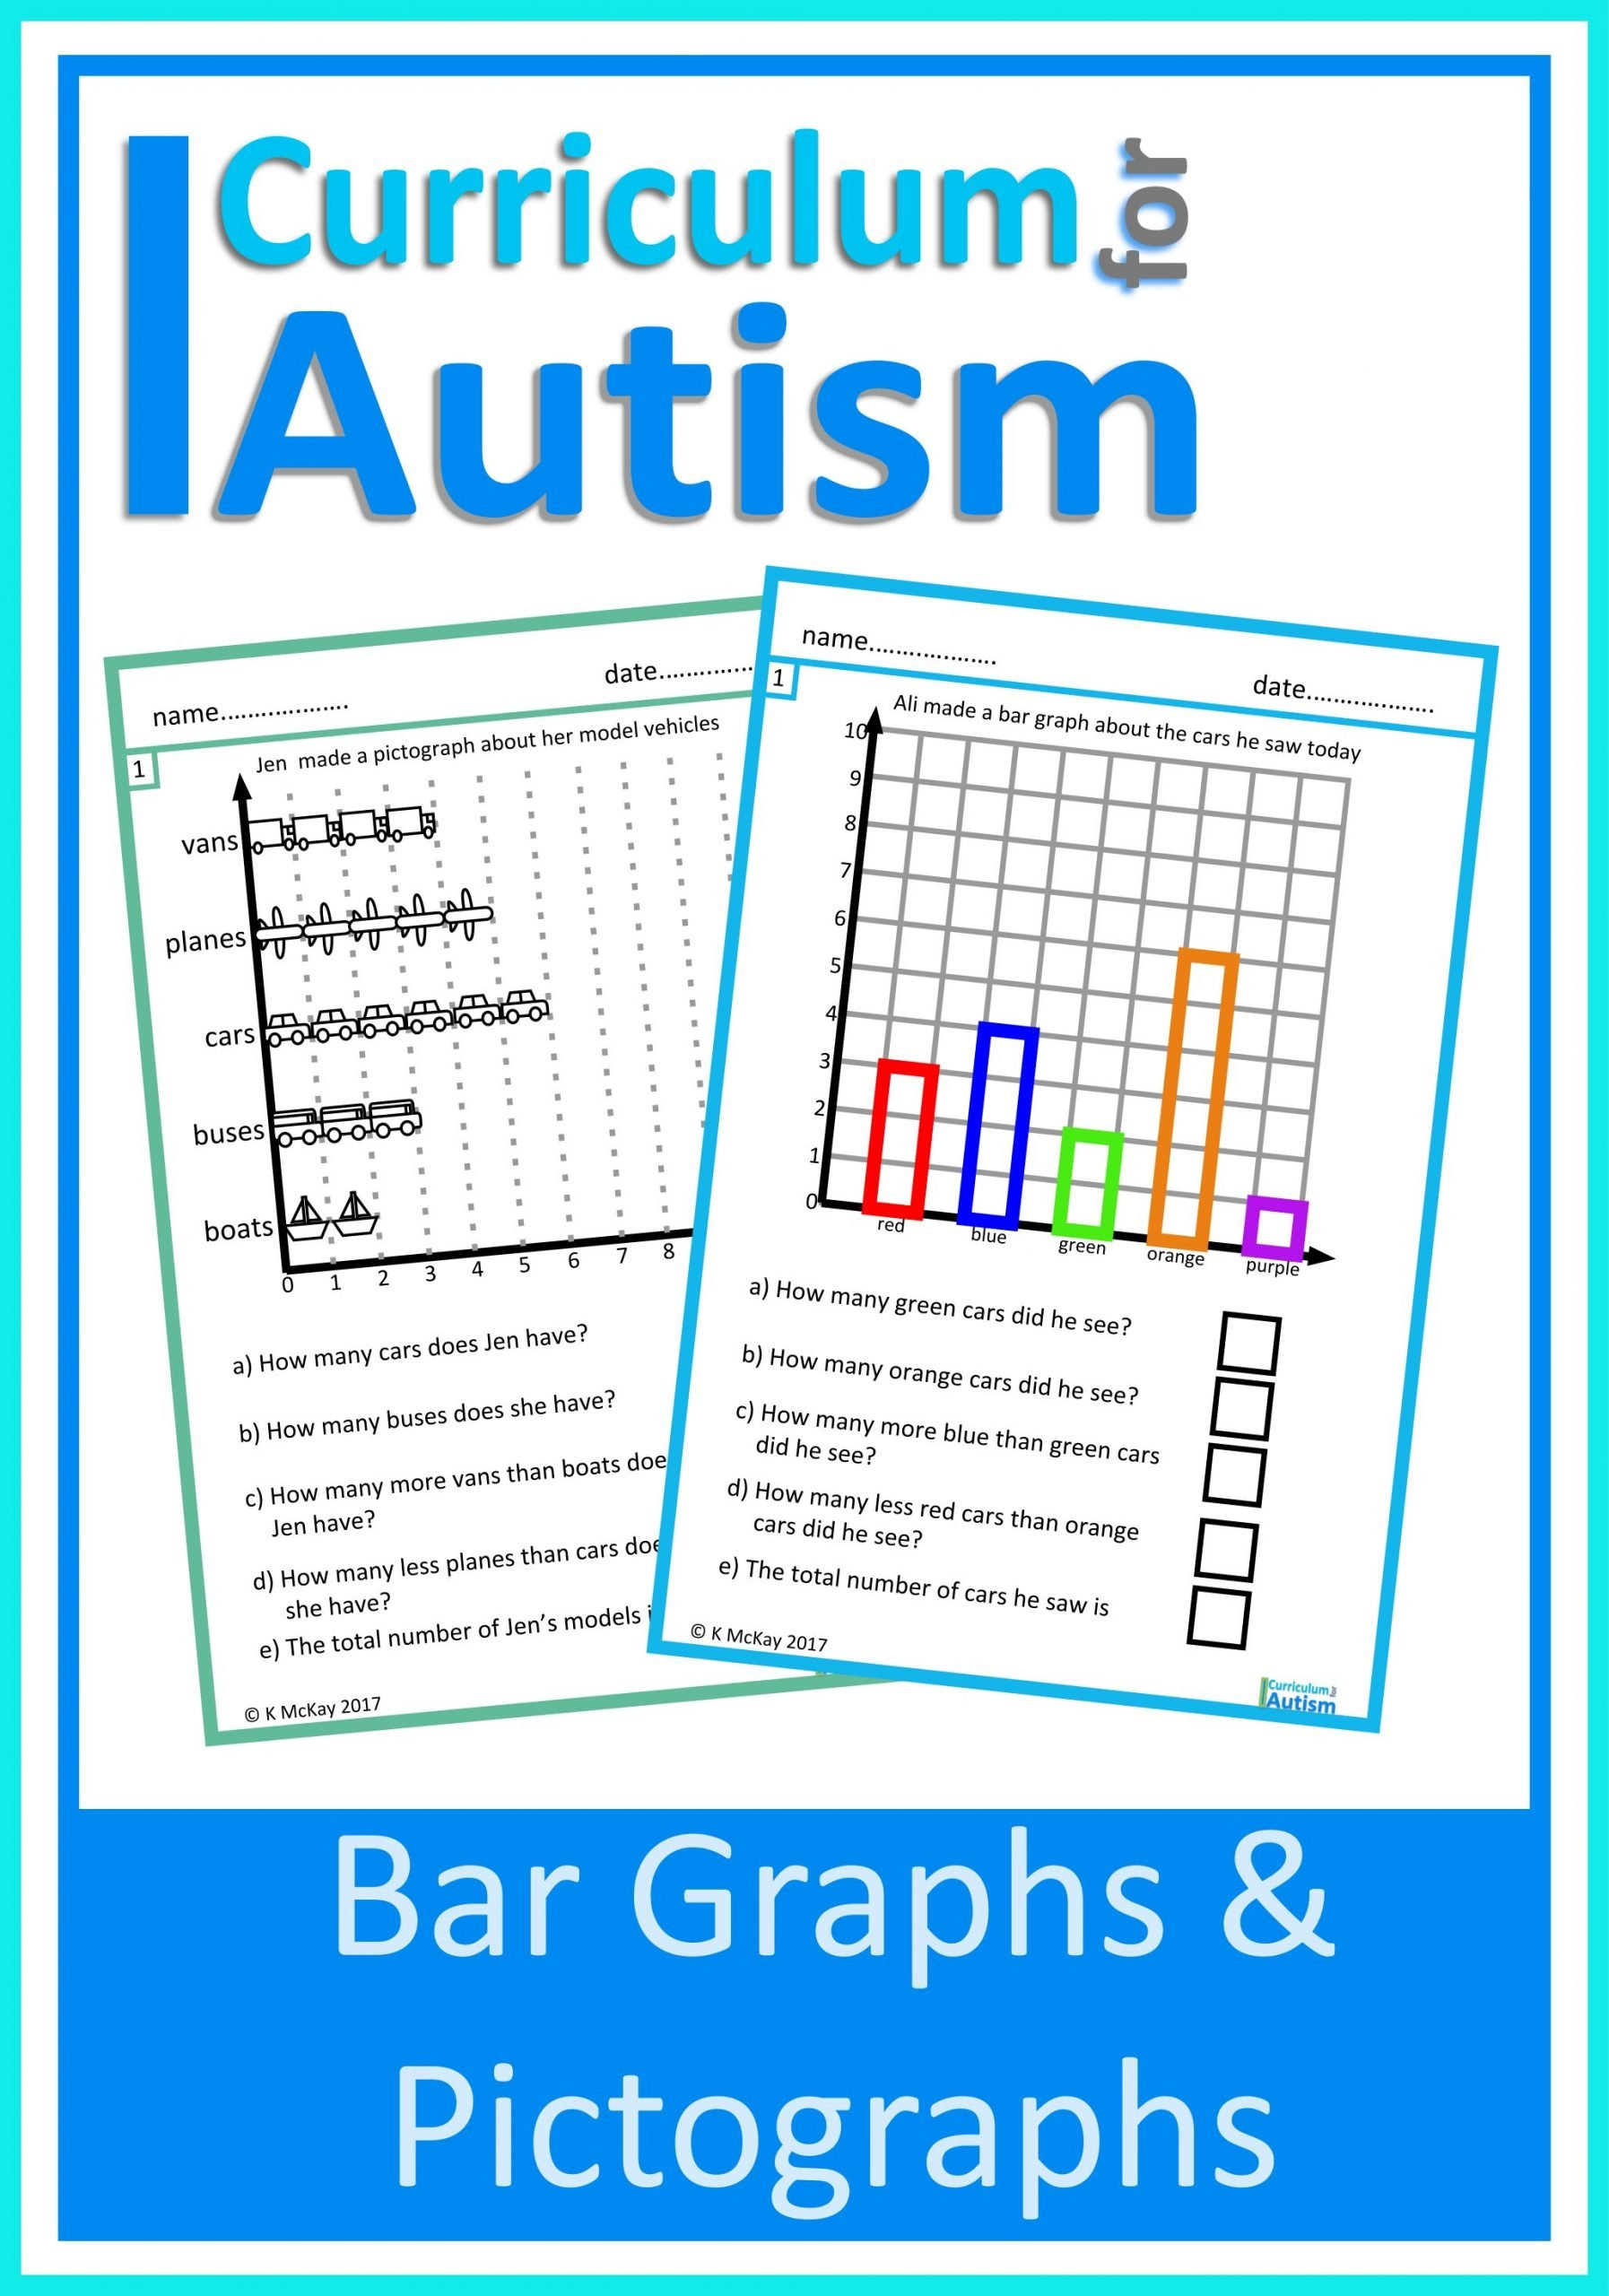 Pictograph Worksheets Pdf Bar Graph & Pictographs Worksheets — Curriculum for Autism